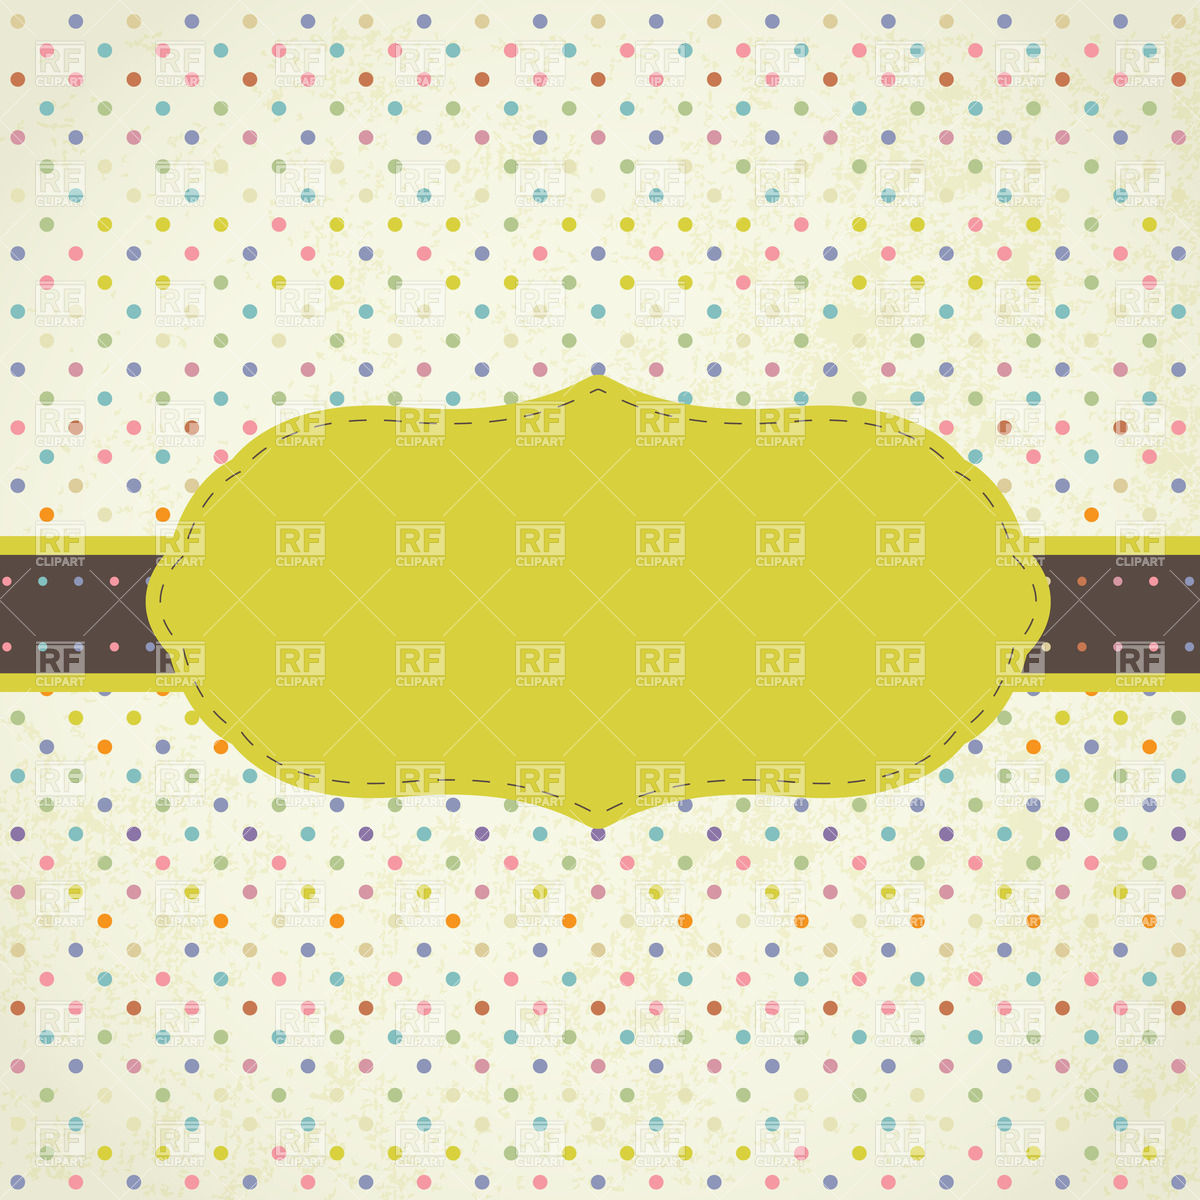 Yellow Frame On Grungy Polka Dot Background 21813 Borders And Frames